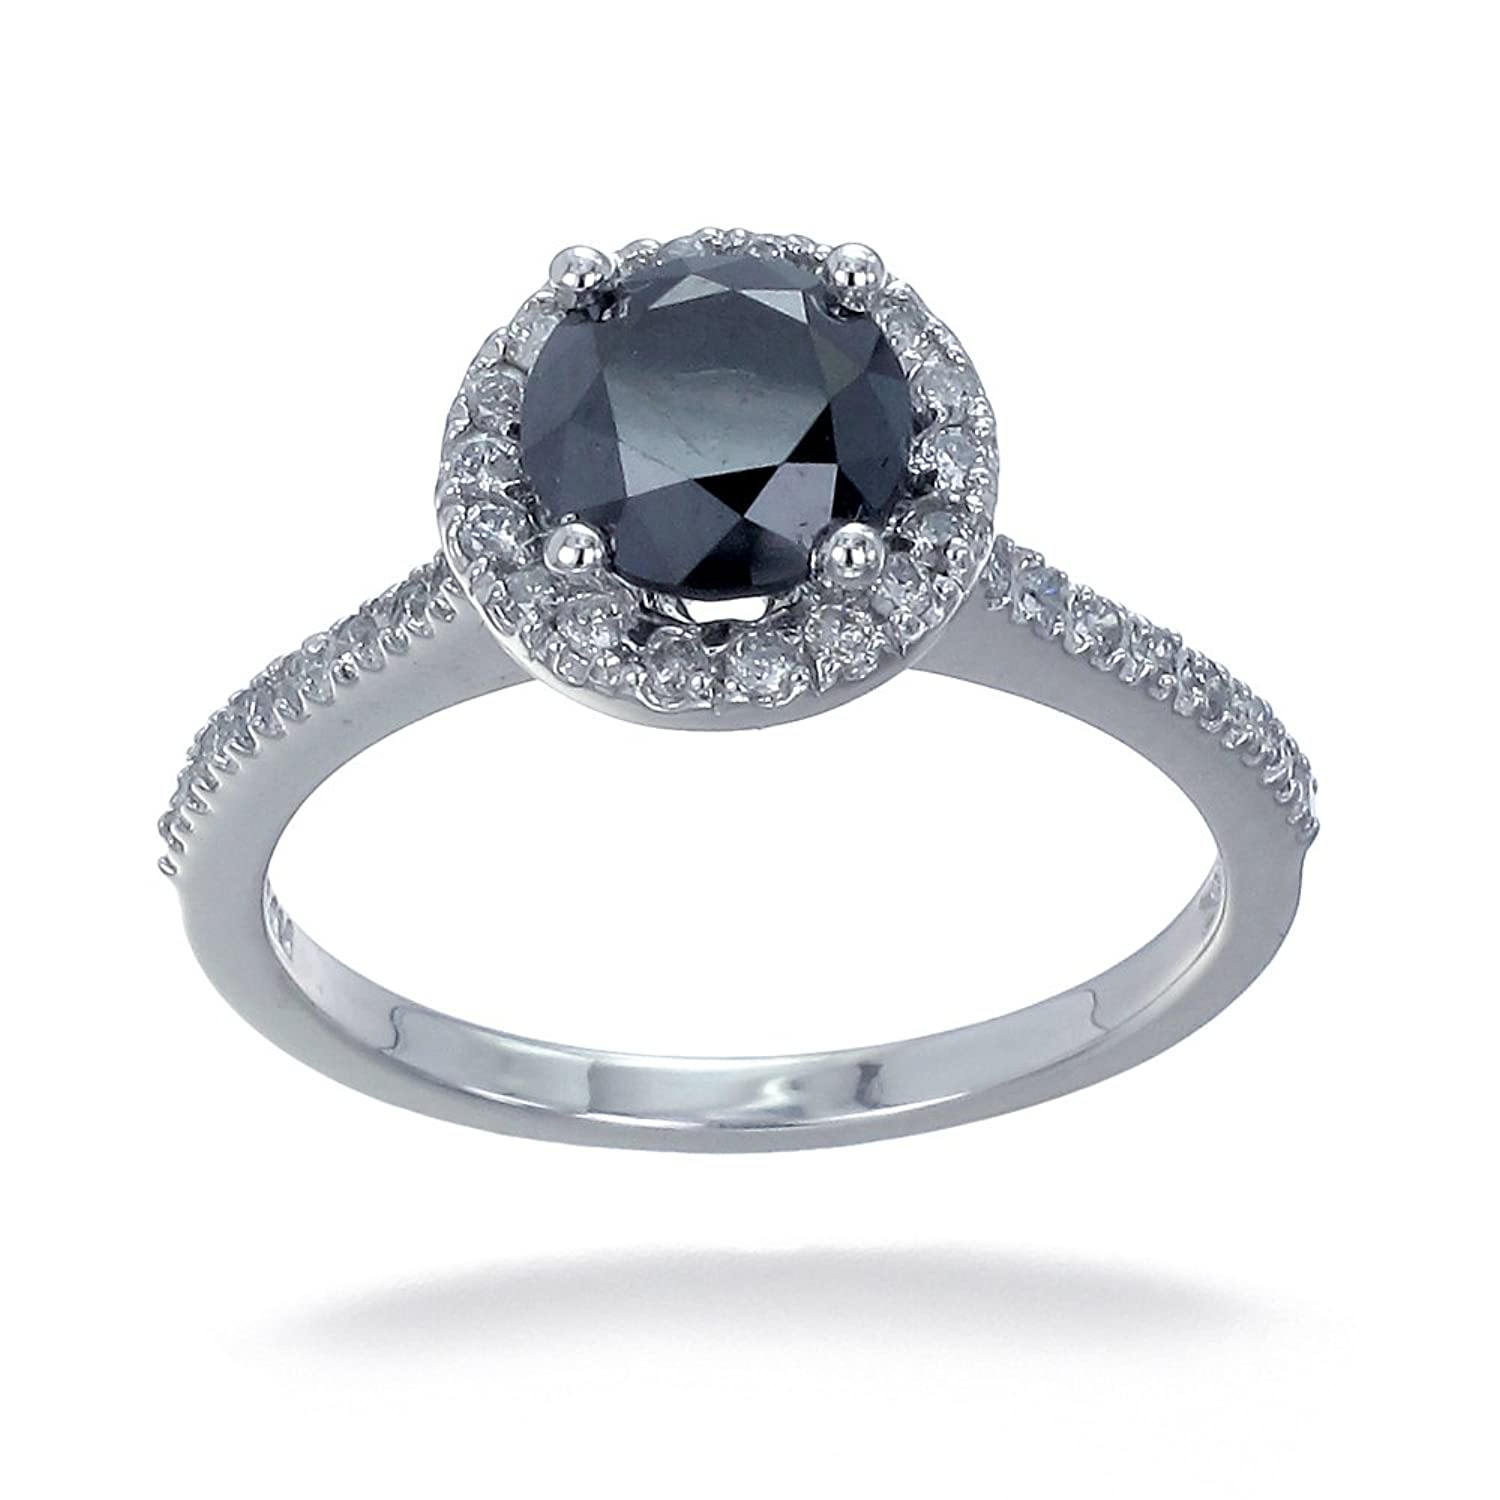 10K White Gold Black Diamond Engagement Ring 1 50 CT